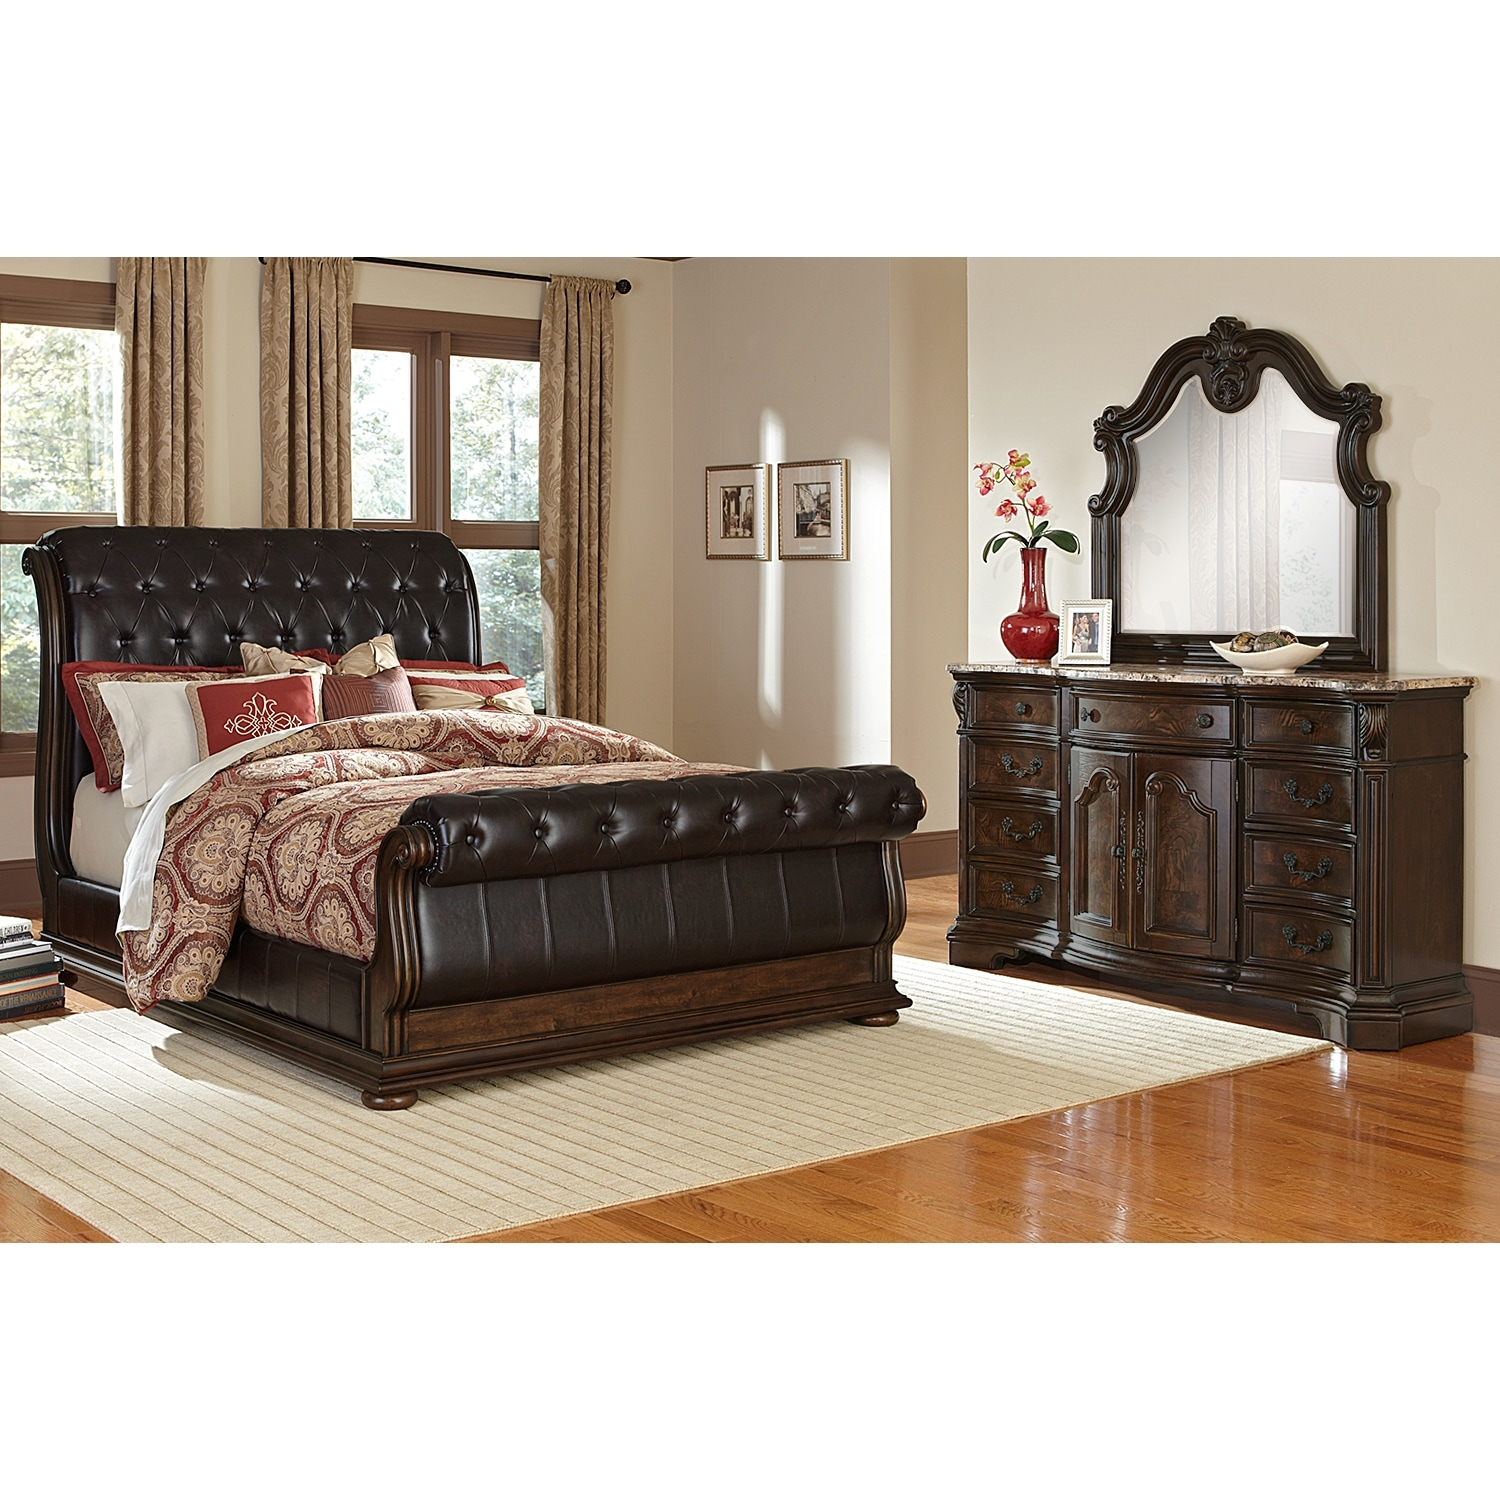 Sleigh Bedroom Suites Bedroom Suites For Sale Large Size Of To Go King Size Bedroom